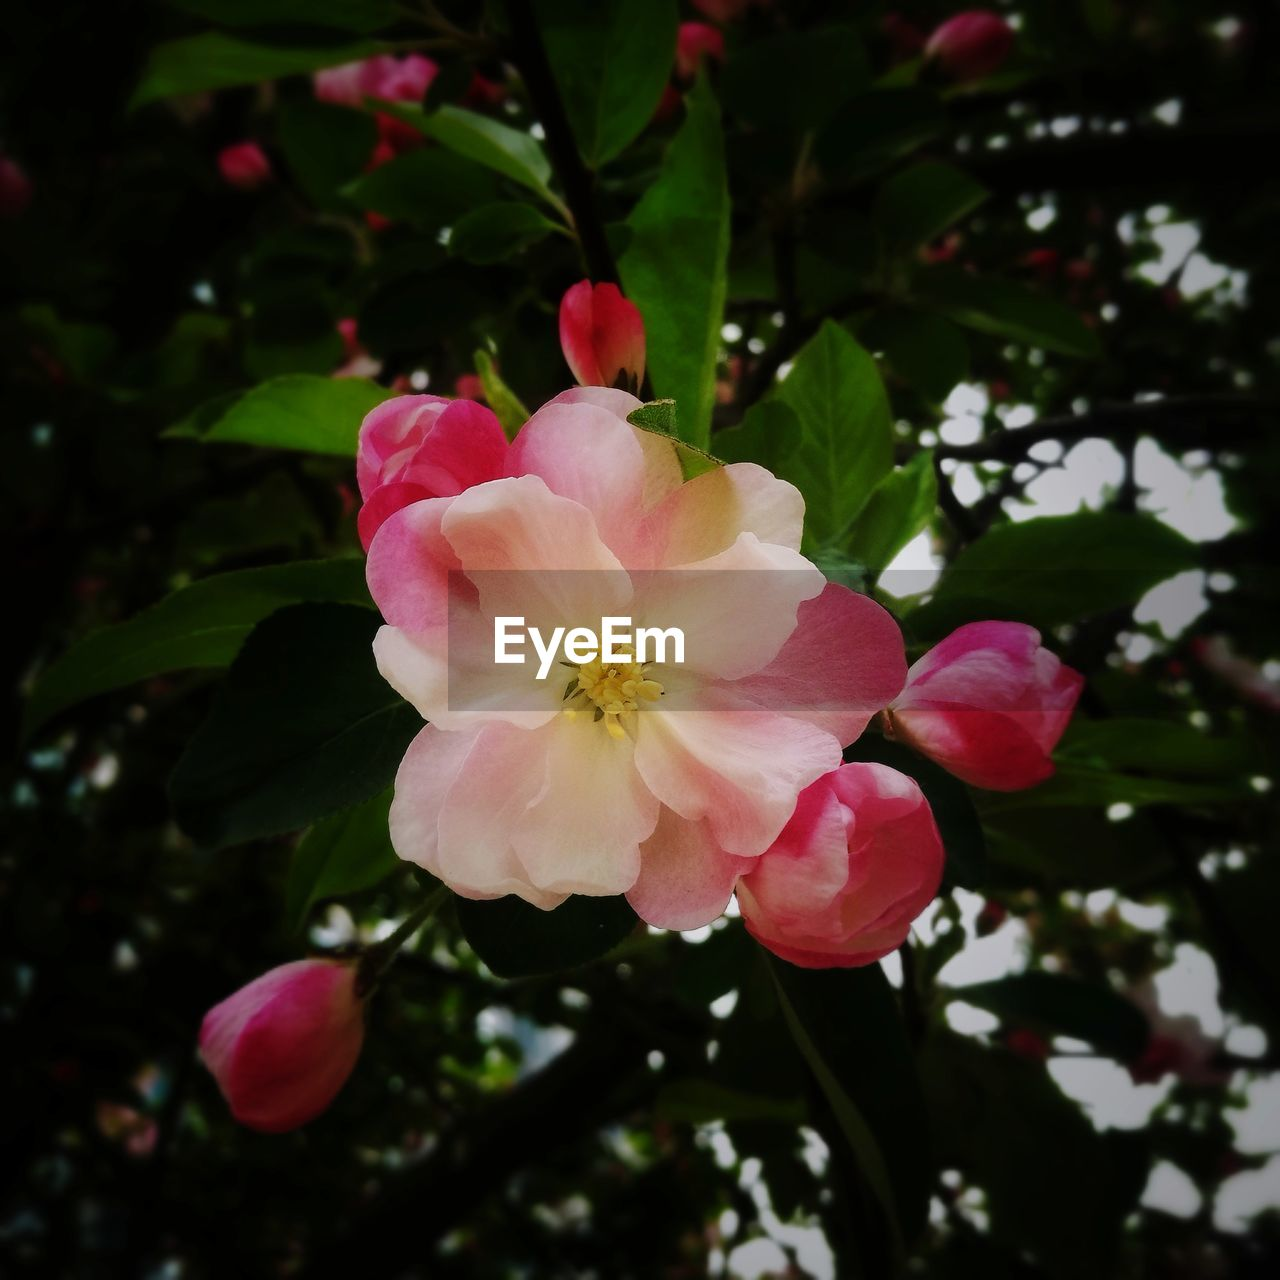 flower, petal, beauty in nature, nature, fragility, flower head, growth, freshness, pink color, wild rose, blooming, tree, day, outdoors, close-up, no people, periwinkle